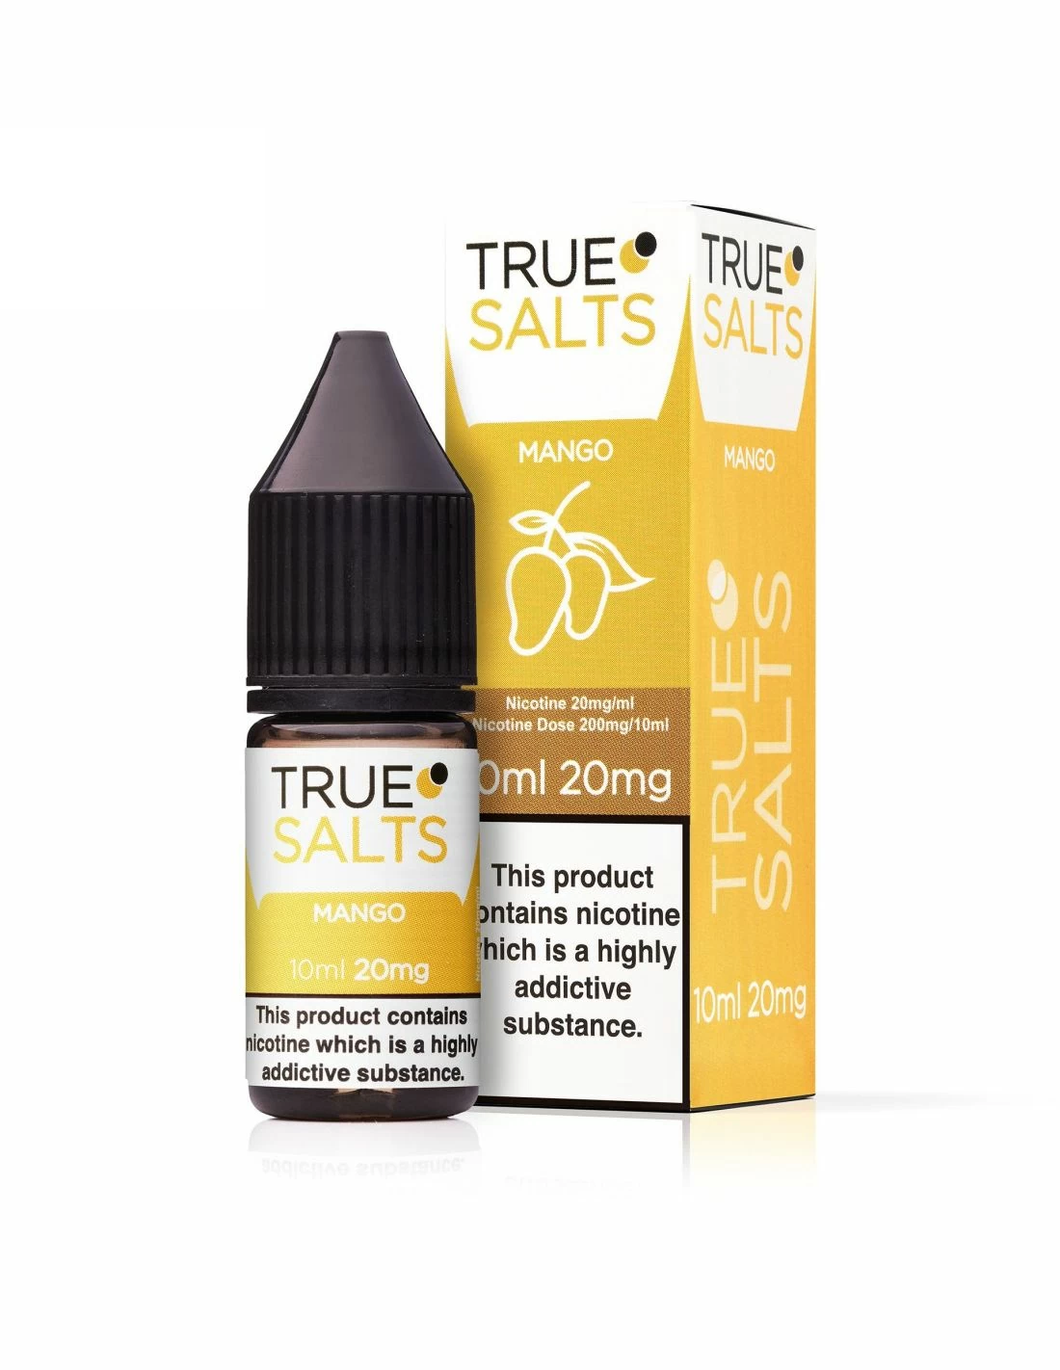 True Salts - Mango Nicotine Salt 10ml